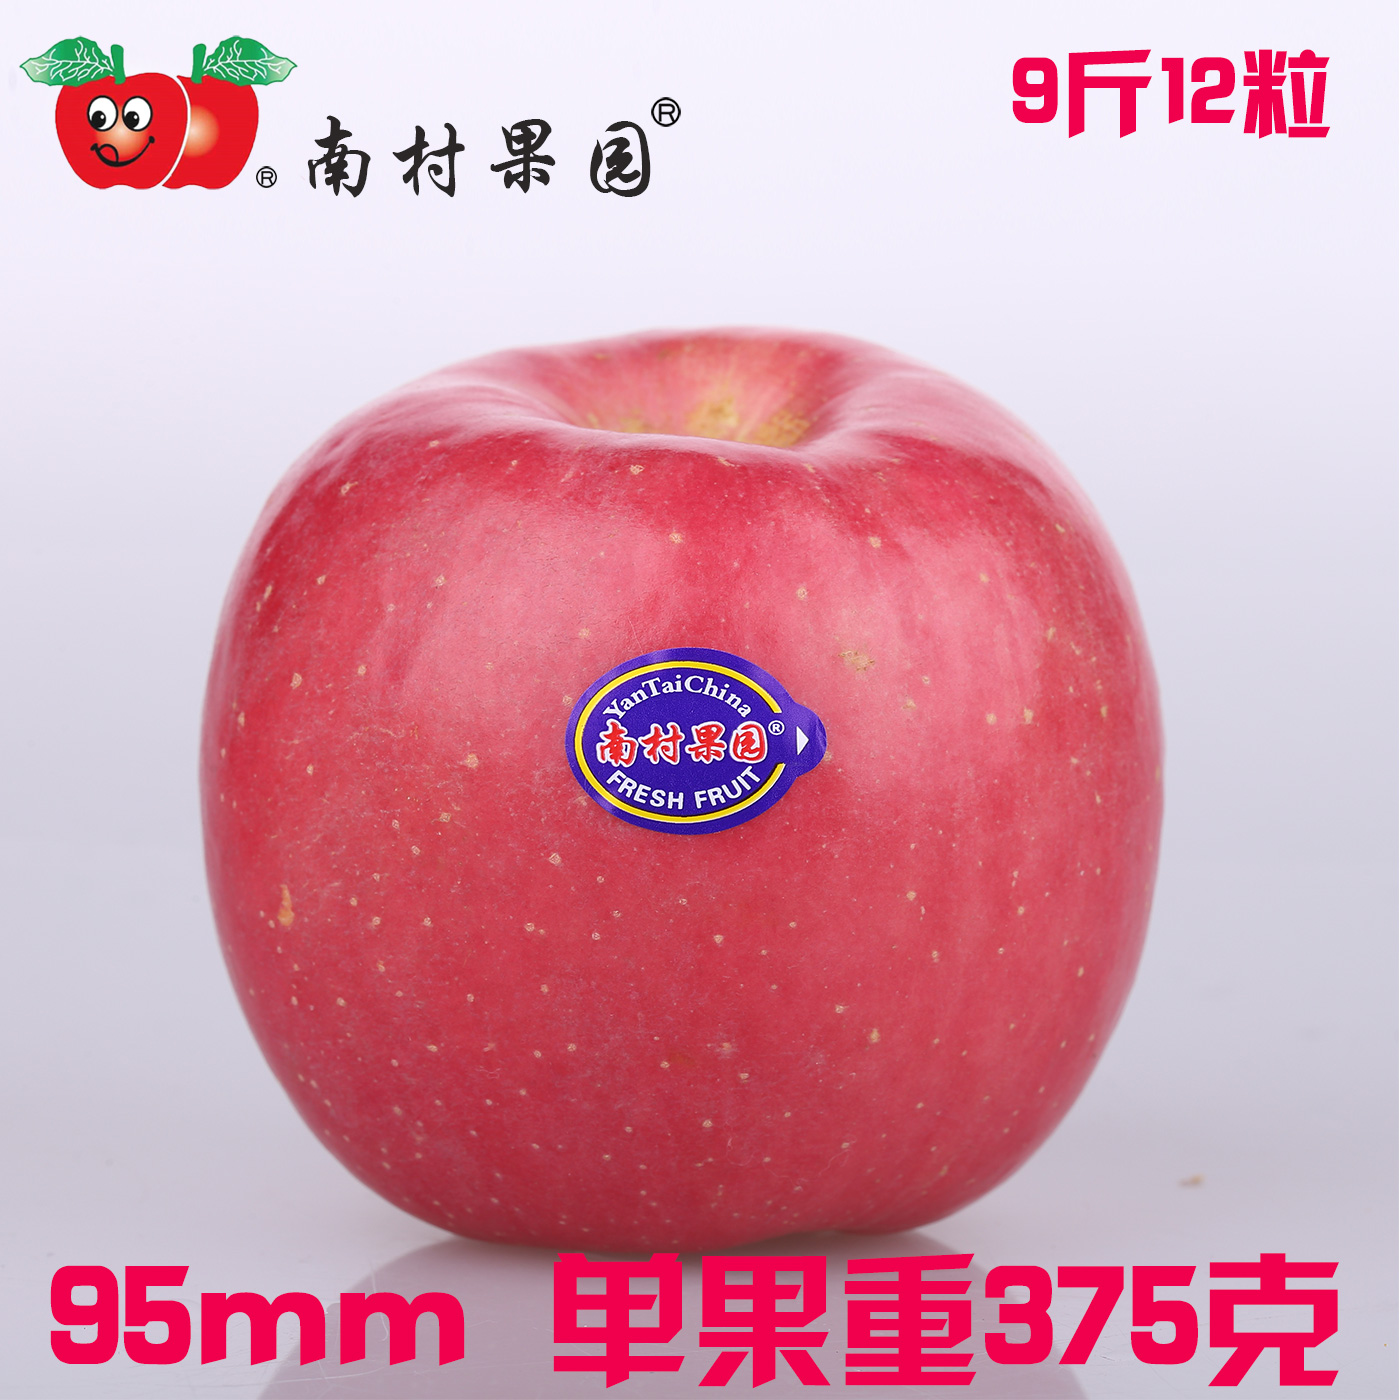 Ddd south village orchard qixia fuji apple apple 95 large fruit yantai specialty fruit fresh apple